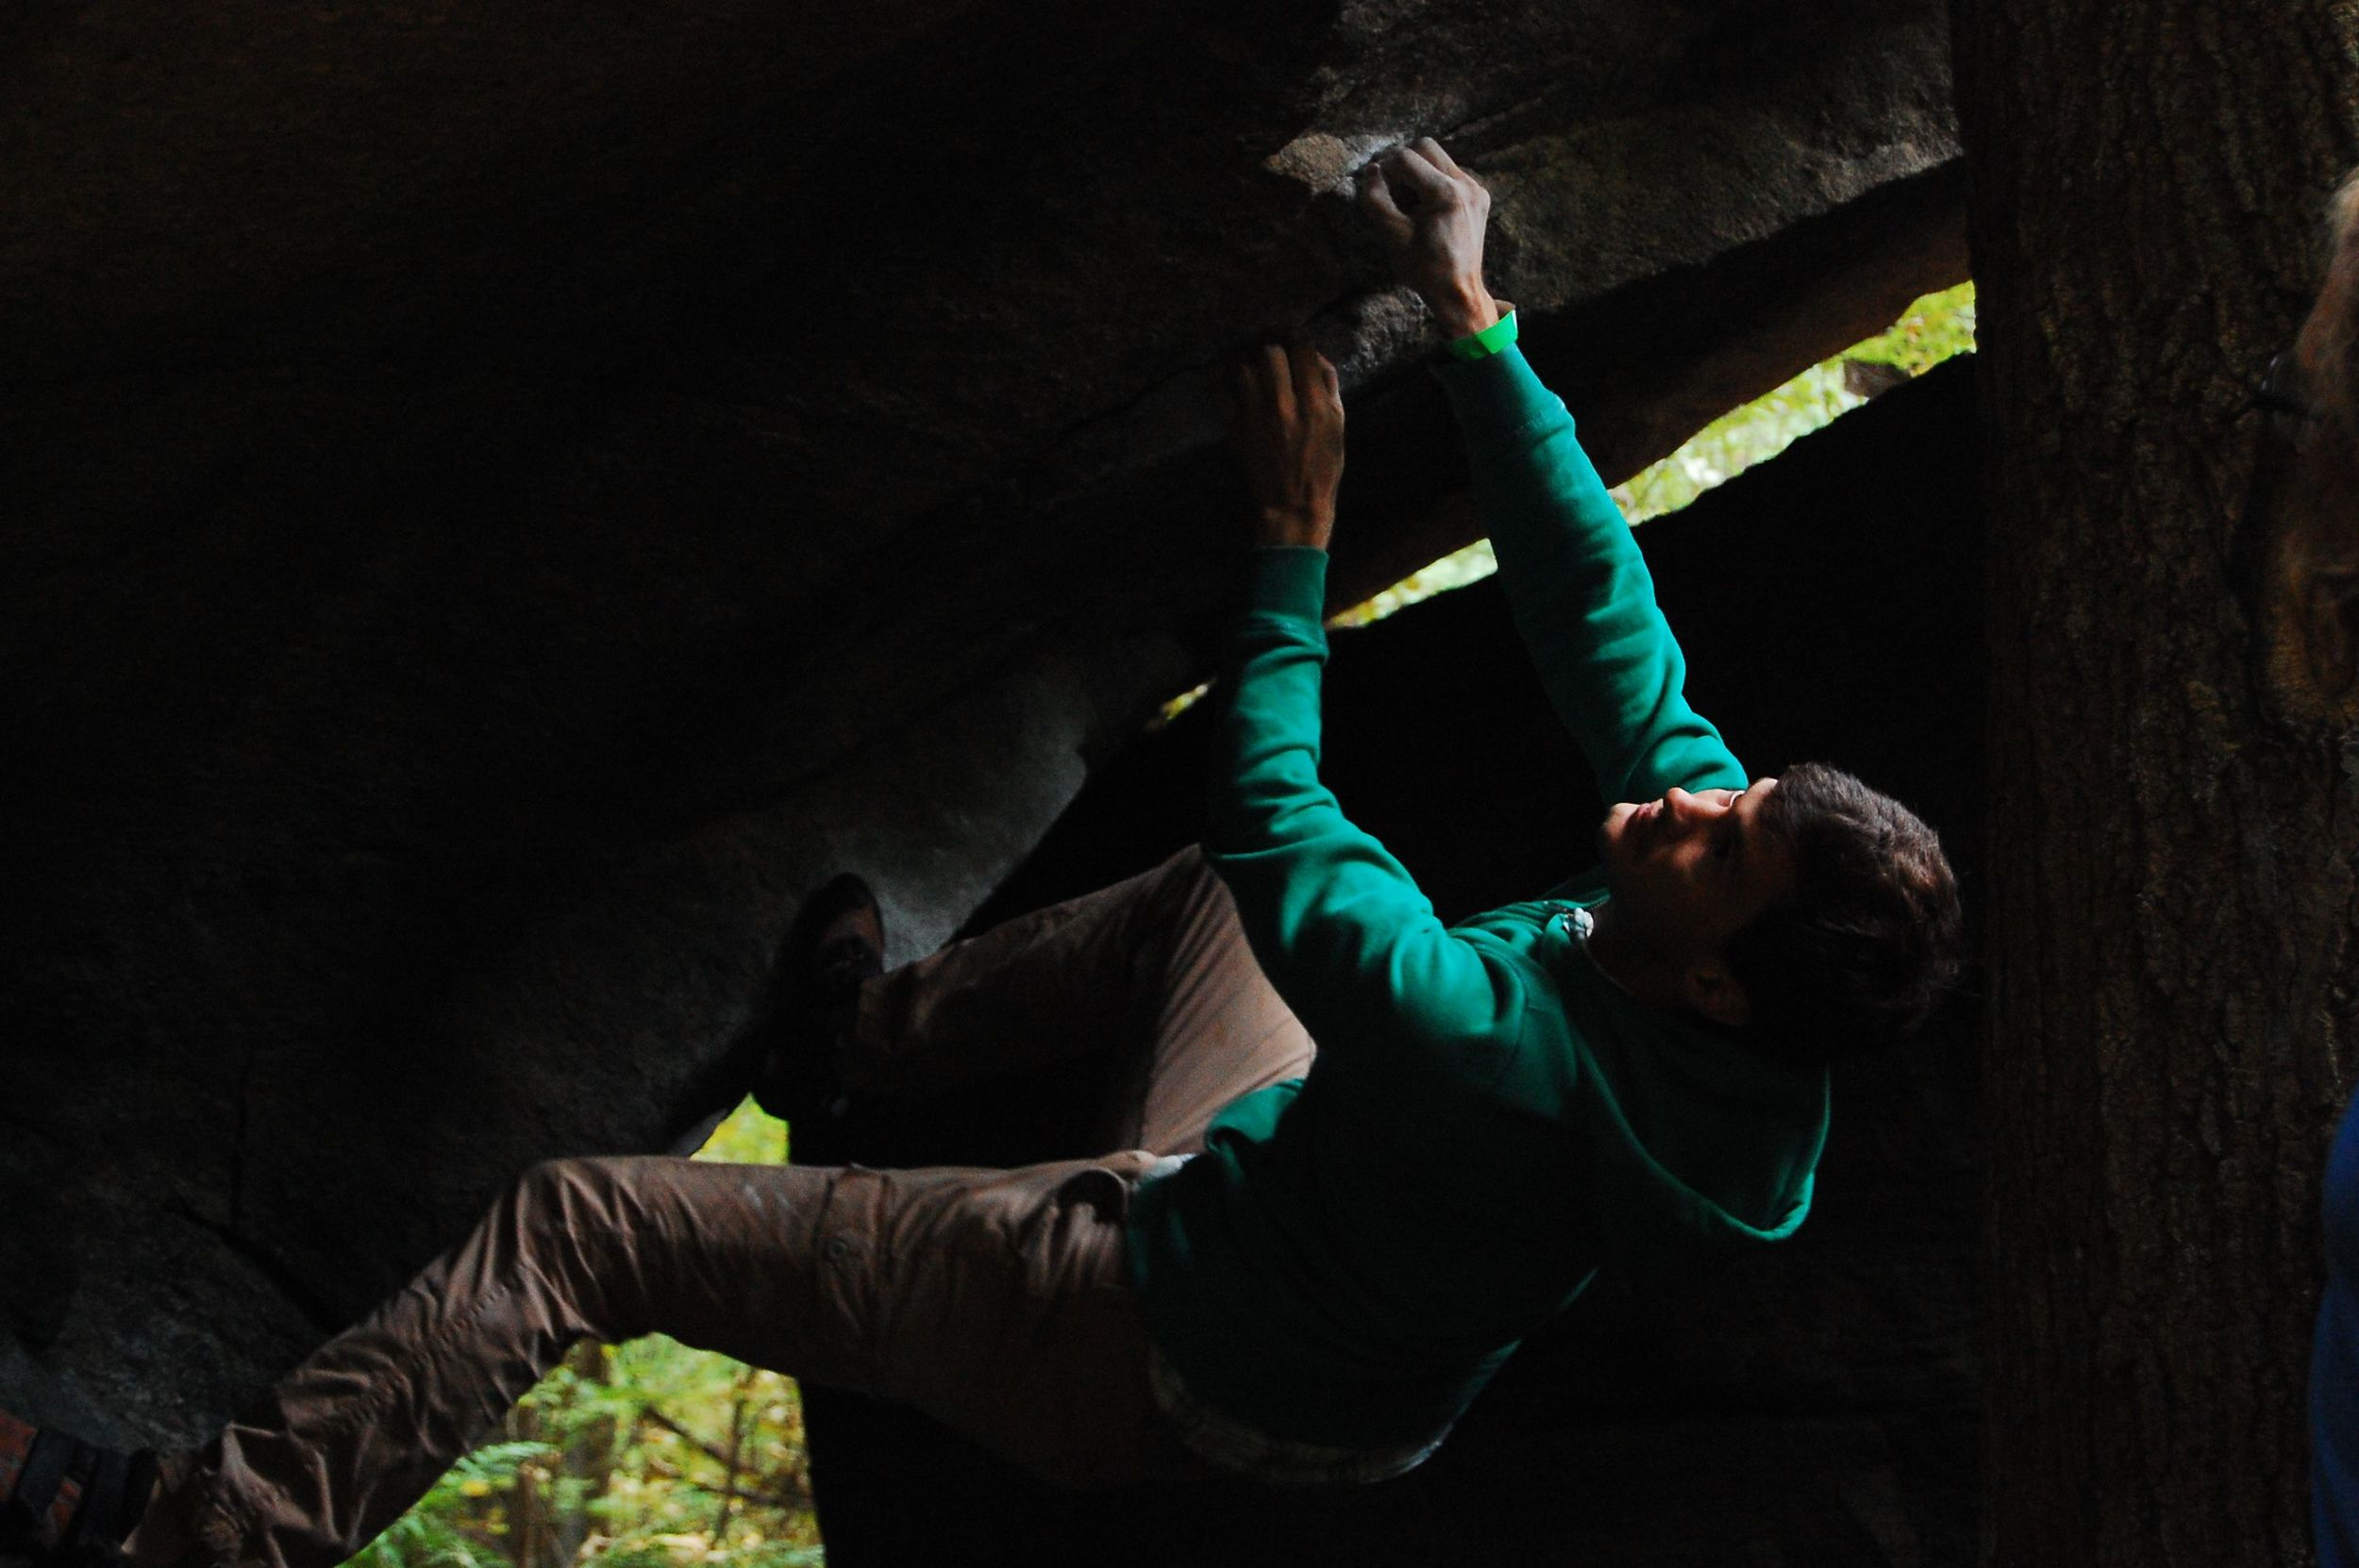 Jerome Boutaid on Tweaky Bird during the bouldering comp.